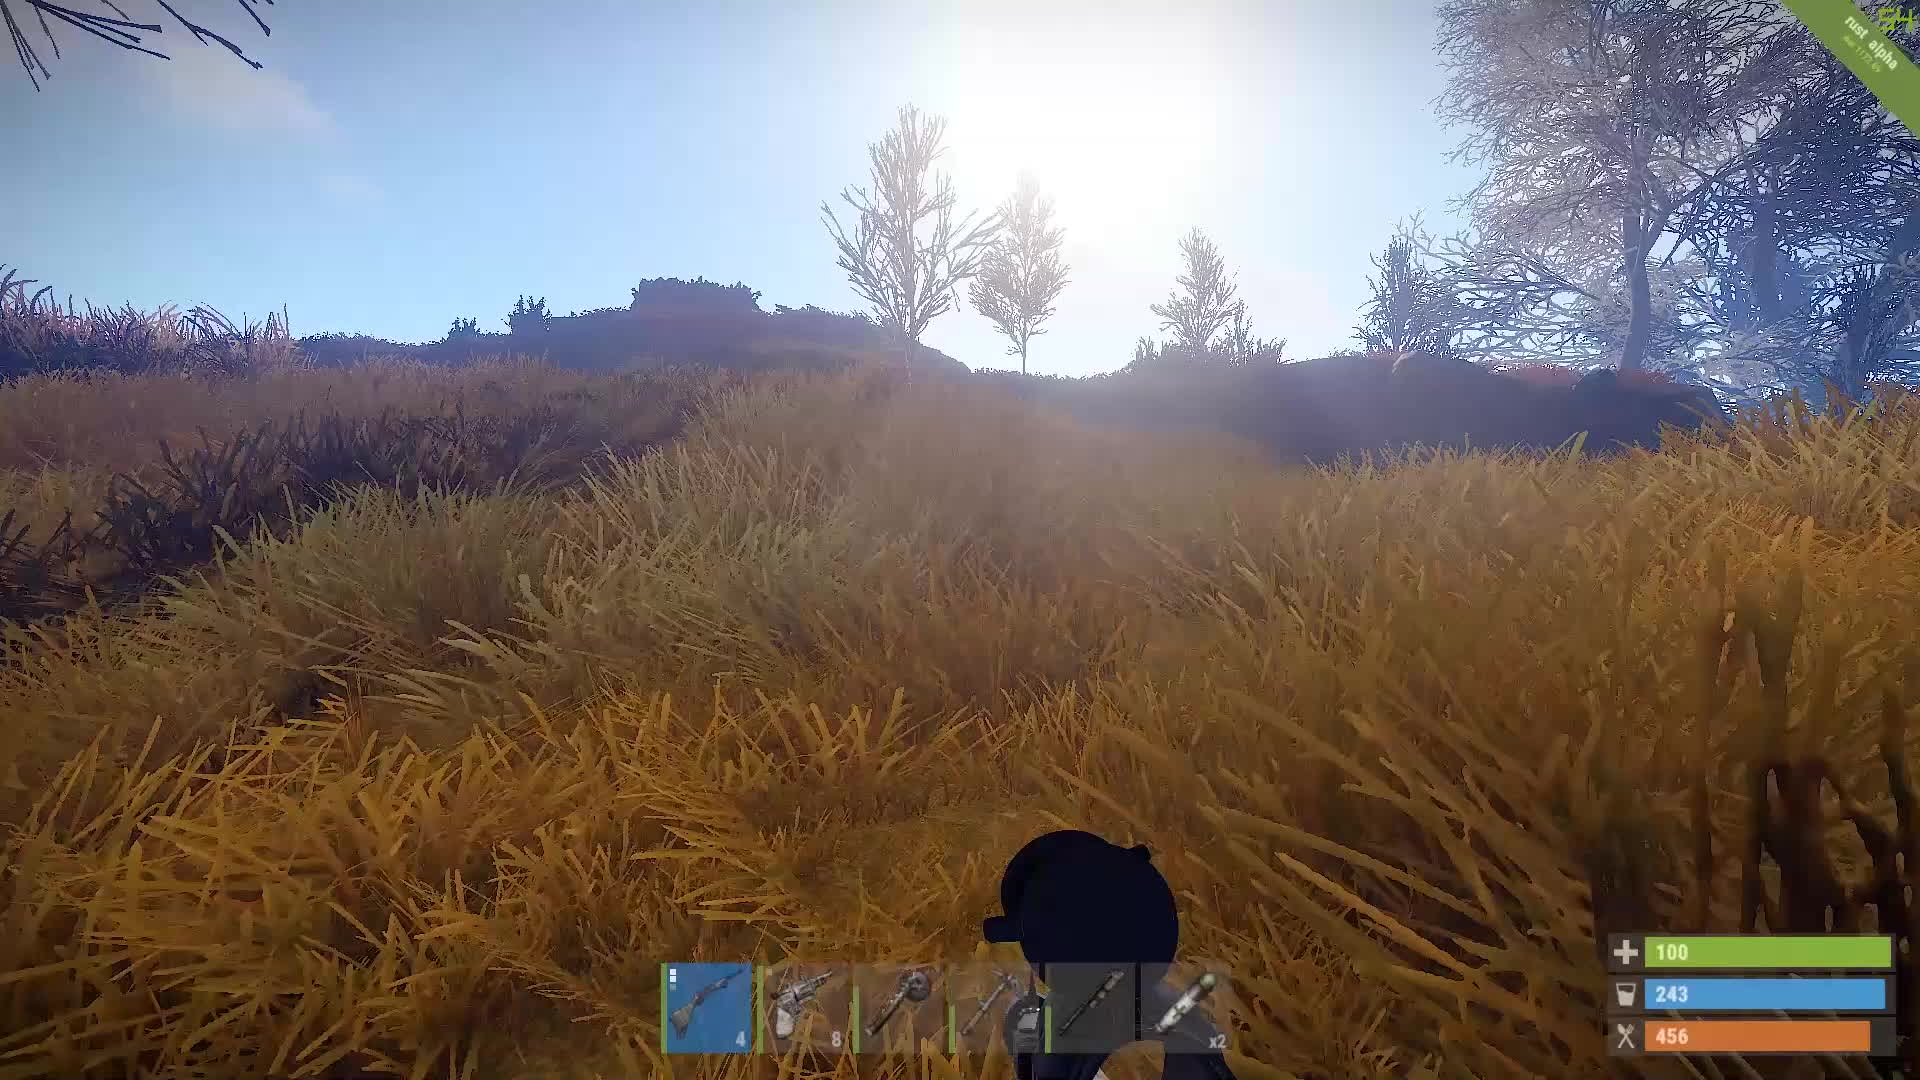 playrust, Can your science explain that? GIFs